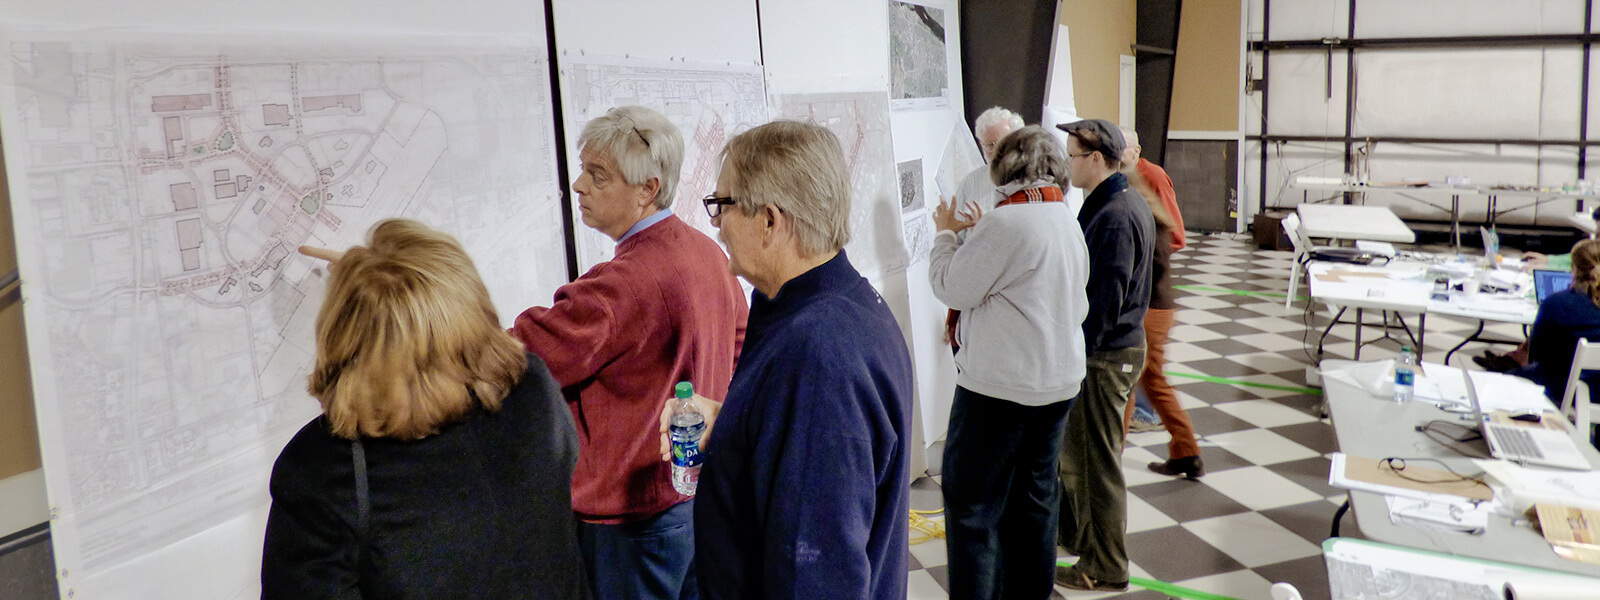 Community members participating in Vista Field charrette.